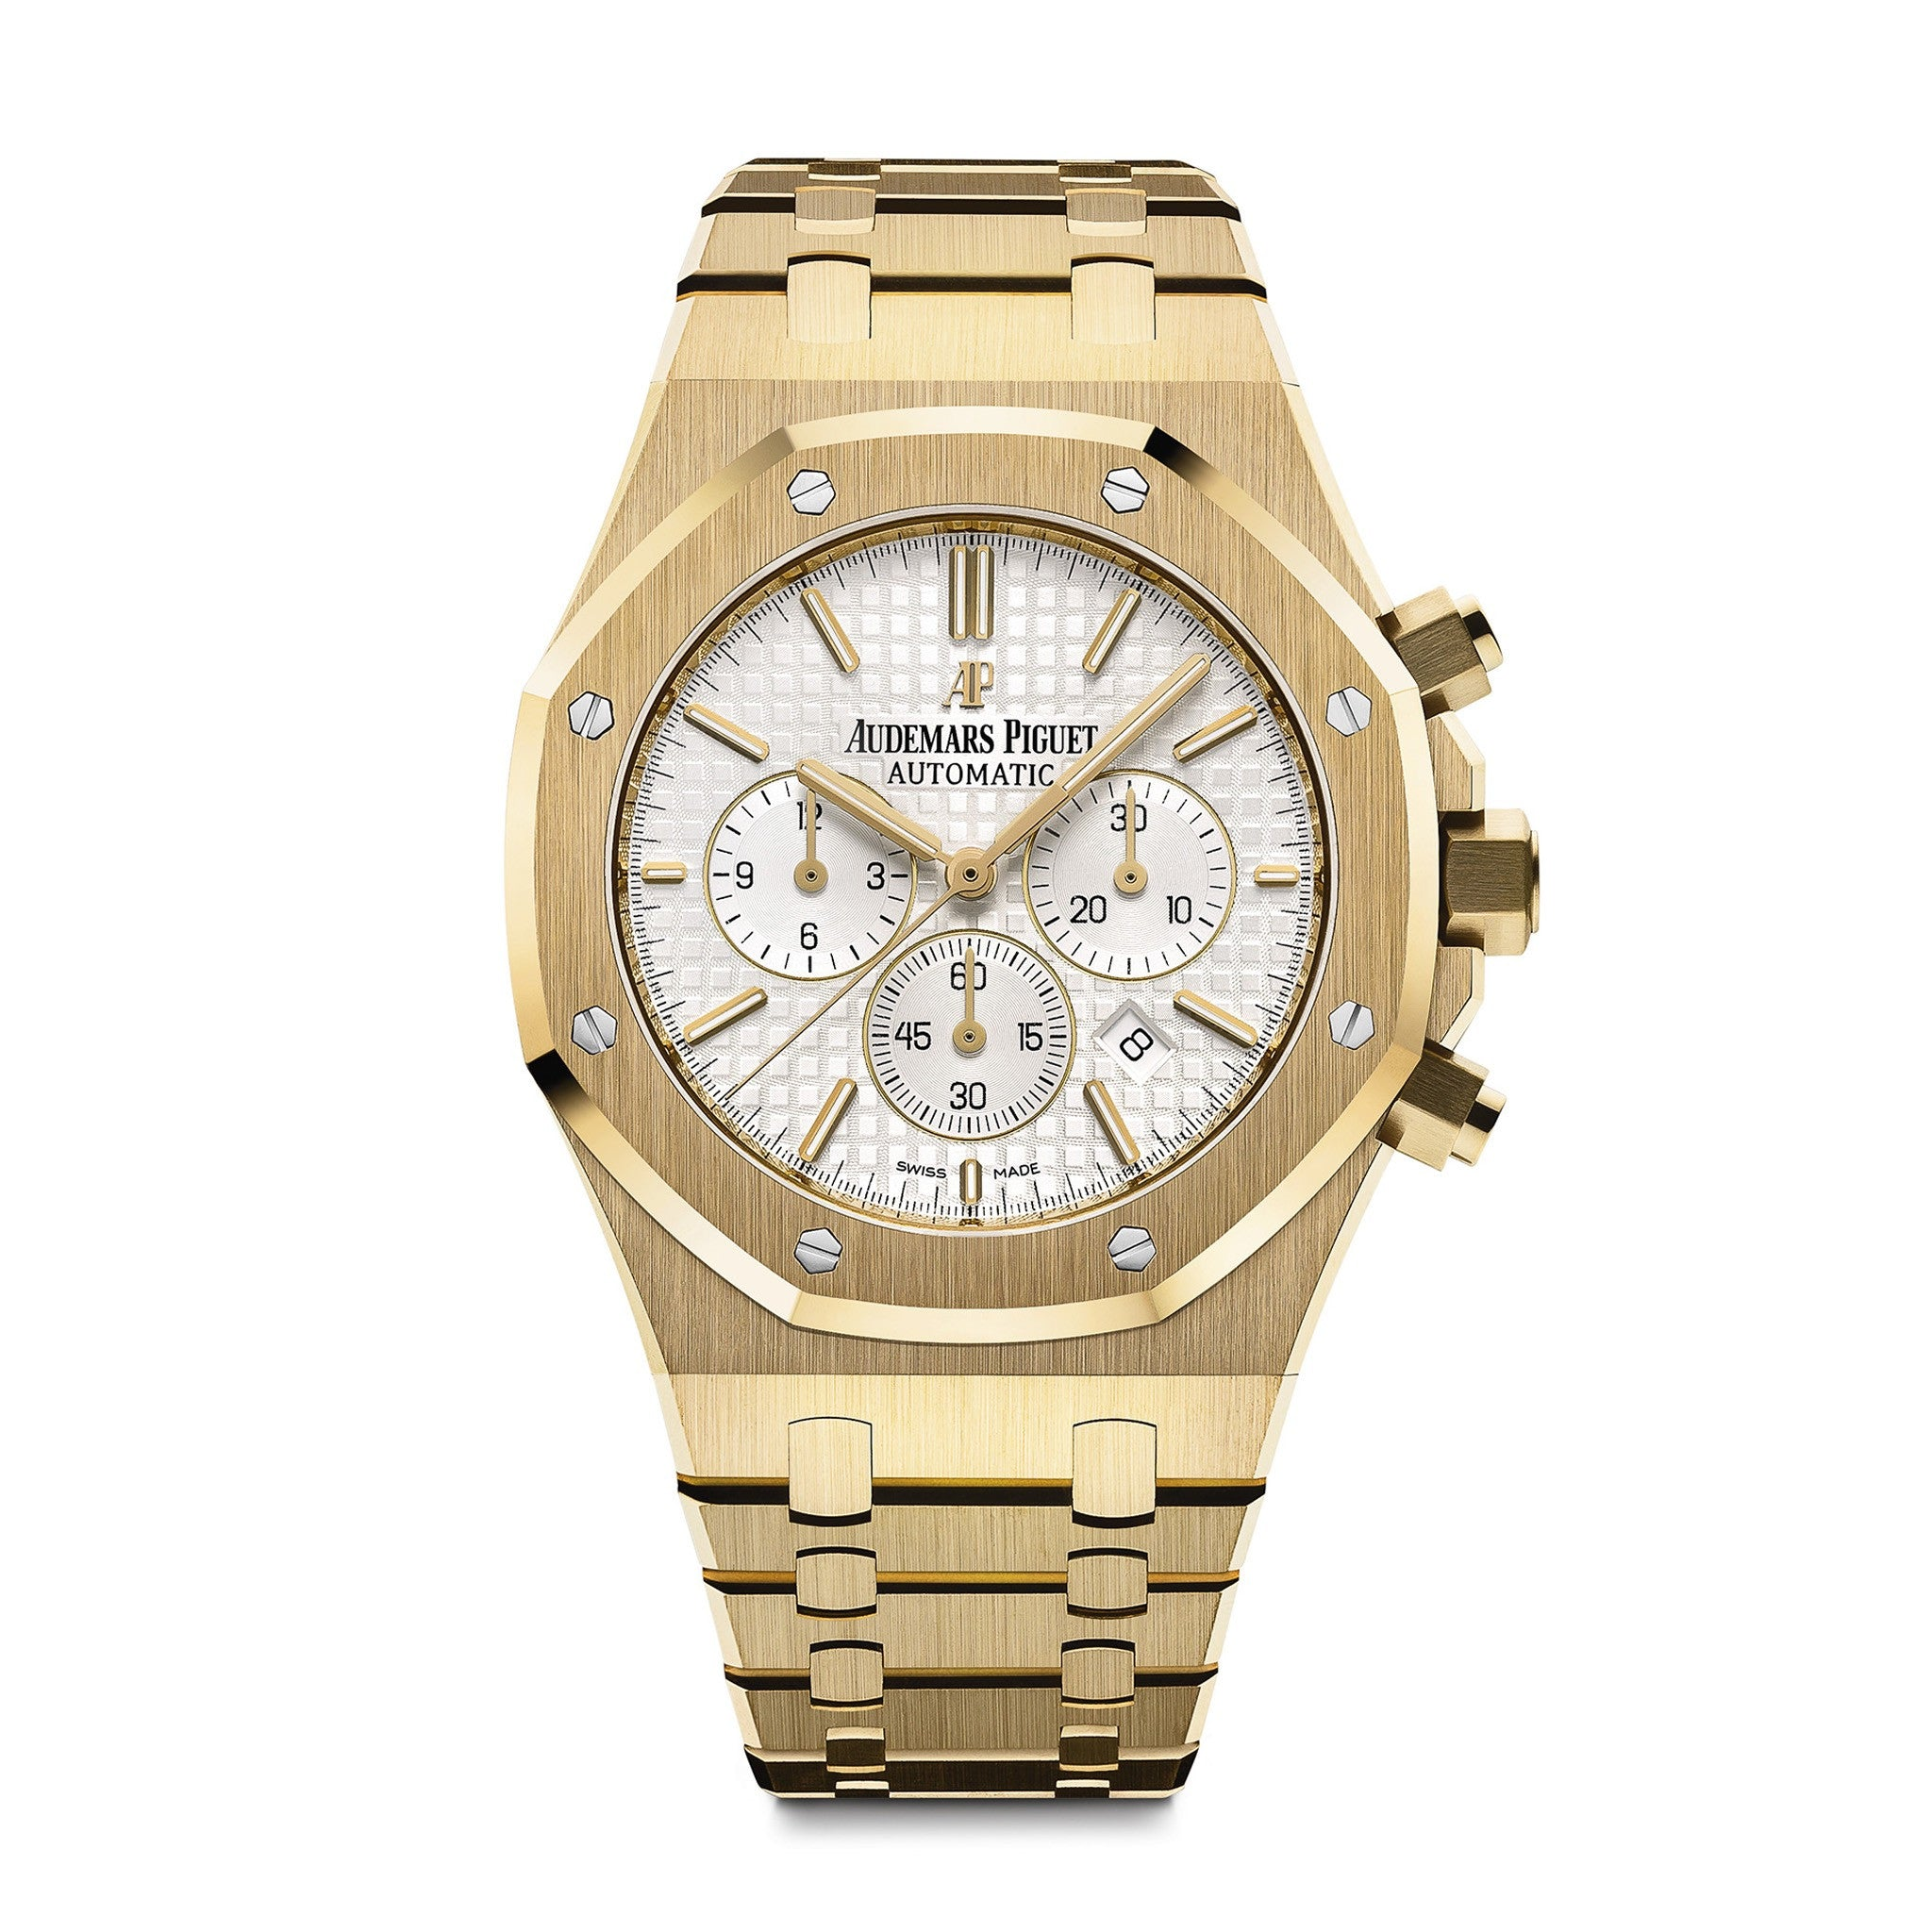 Royal Oak Chronograph 26320BA.OO.1220BA.01 - Audemars Piguet